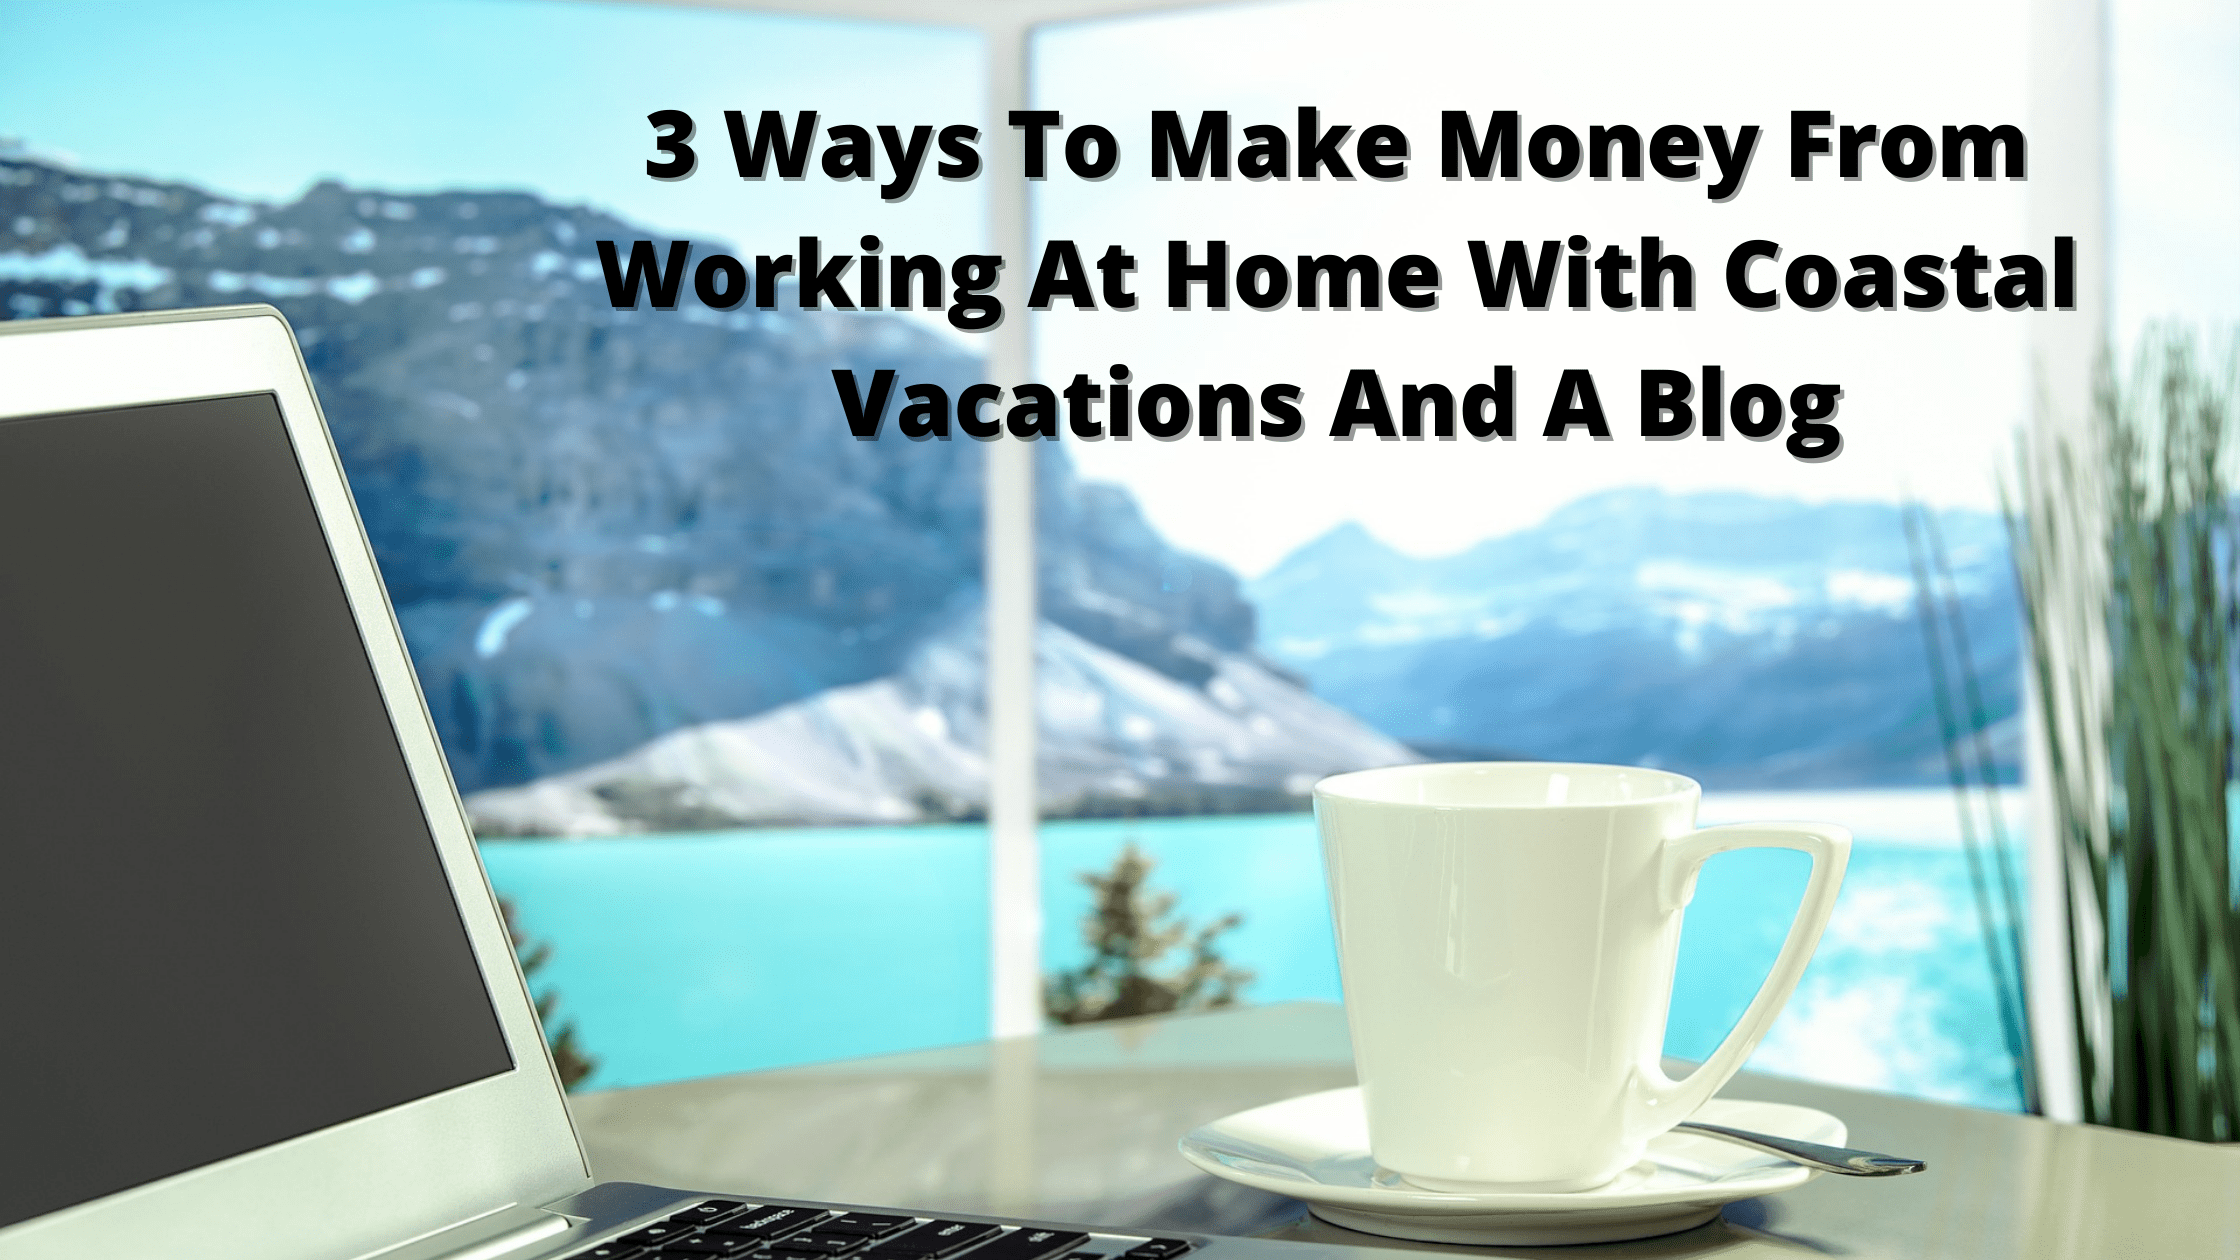 3 Ways To Make Money From Working At Home With Coastal Vacations And A Blog